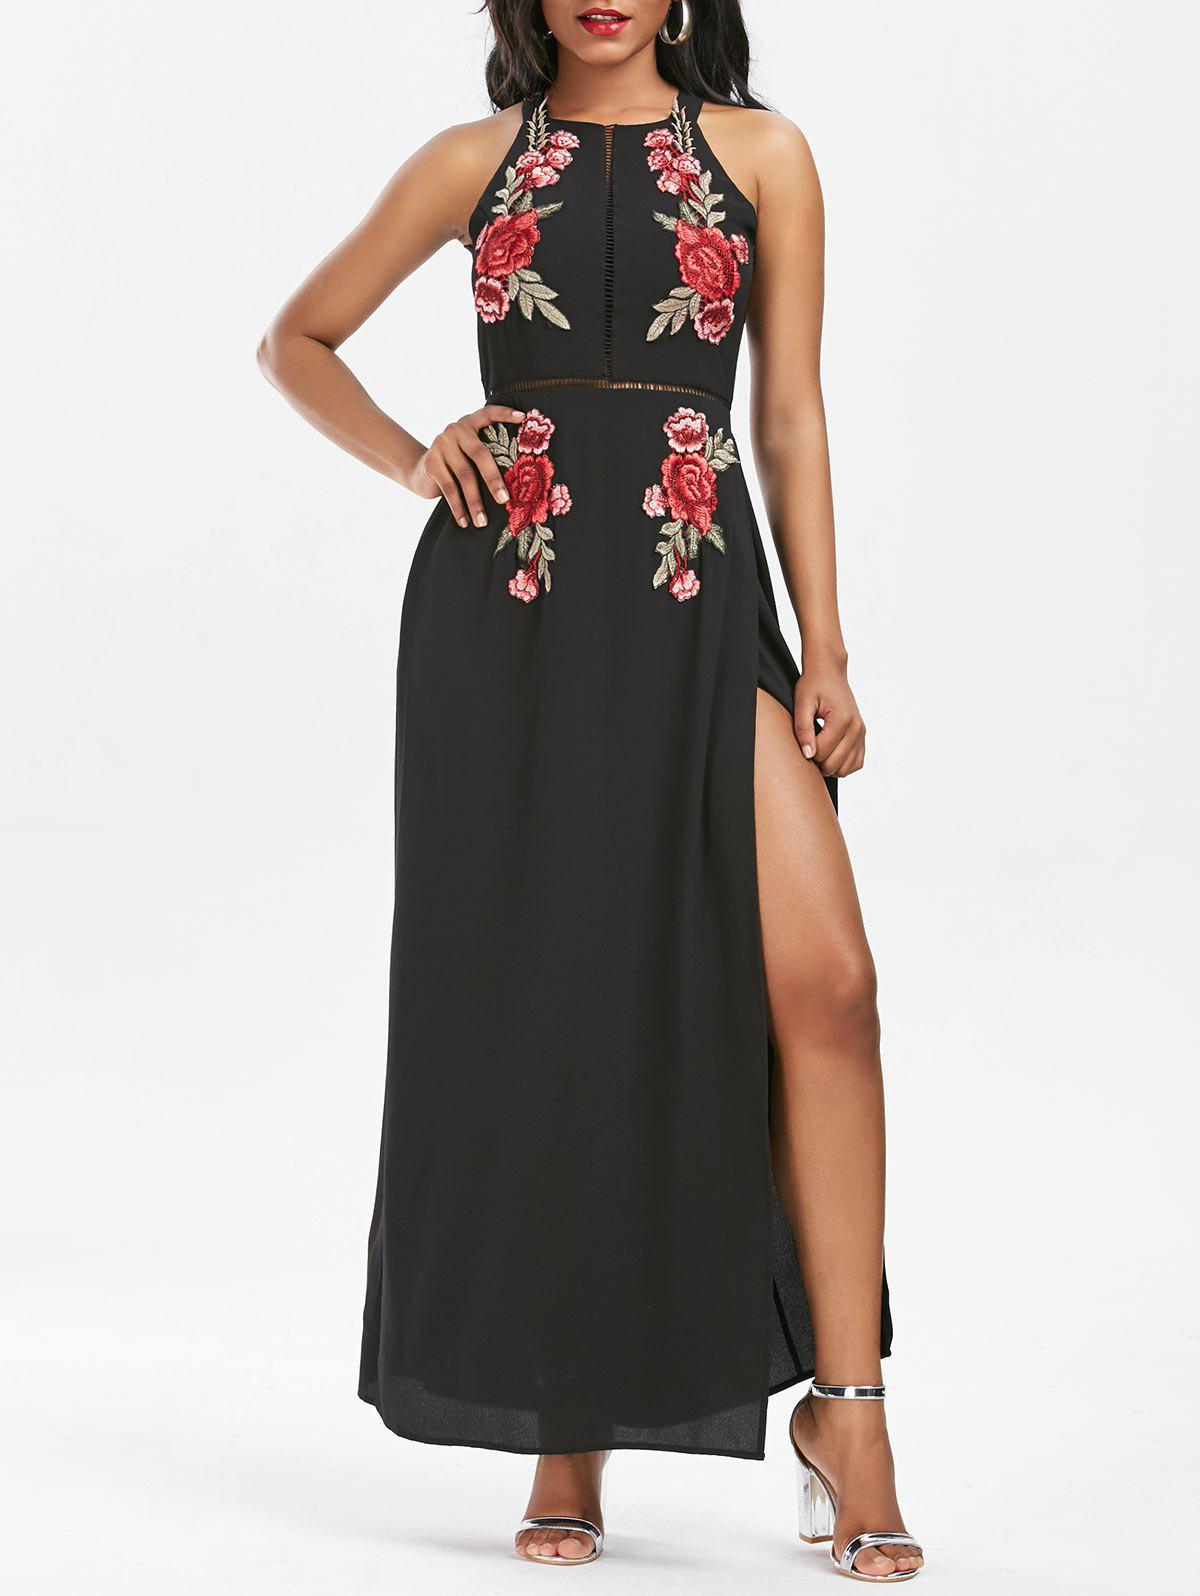 Affordable Embroidered Backless Thigh High Slit Maxi Dress